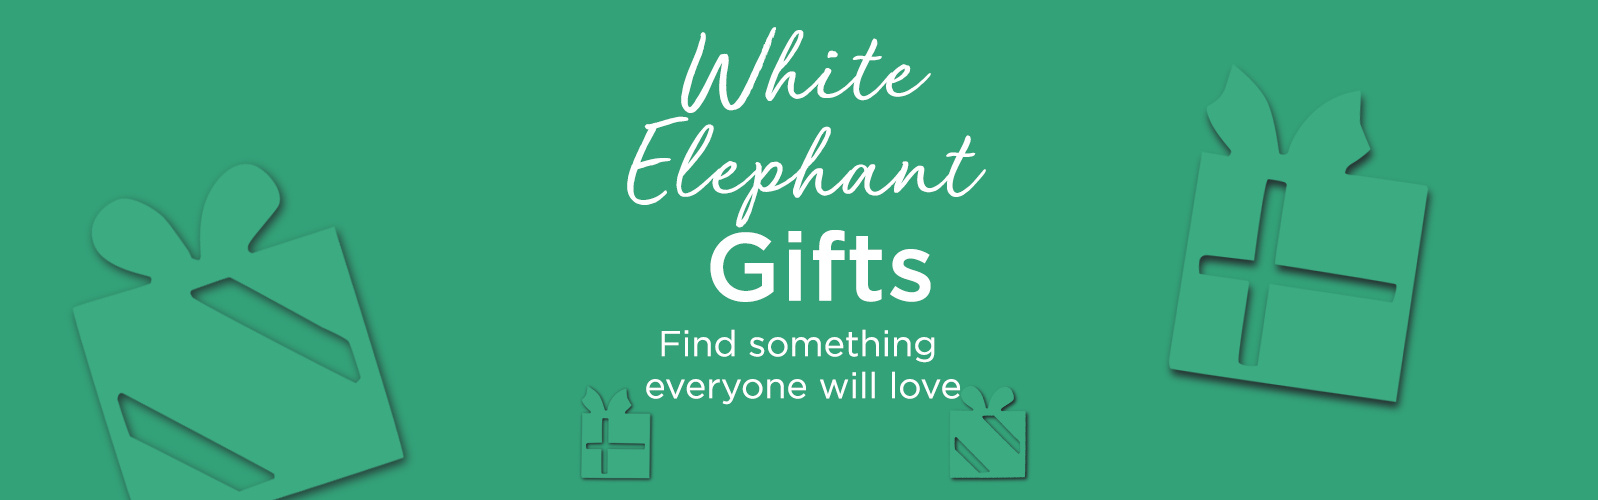 White Elephant Gifts  Find something everyone will love